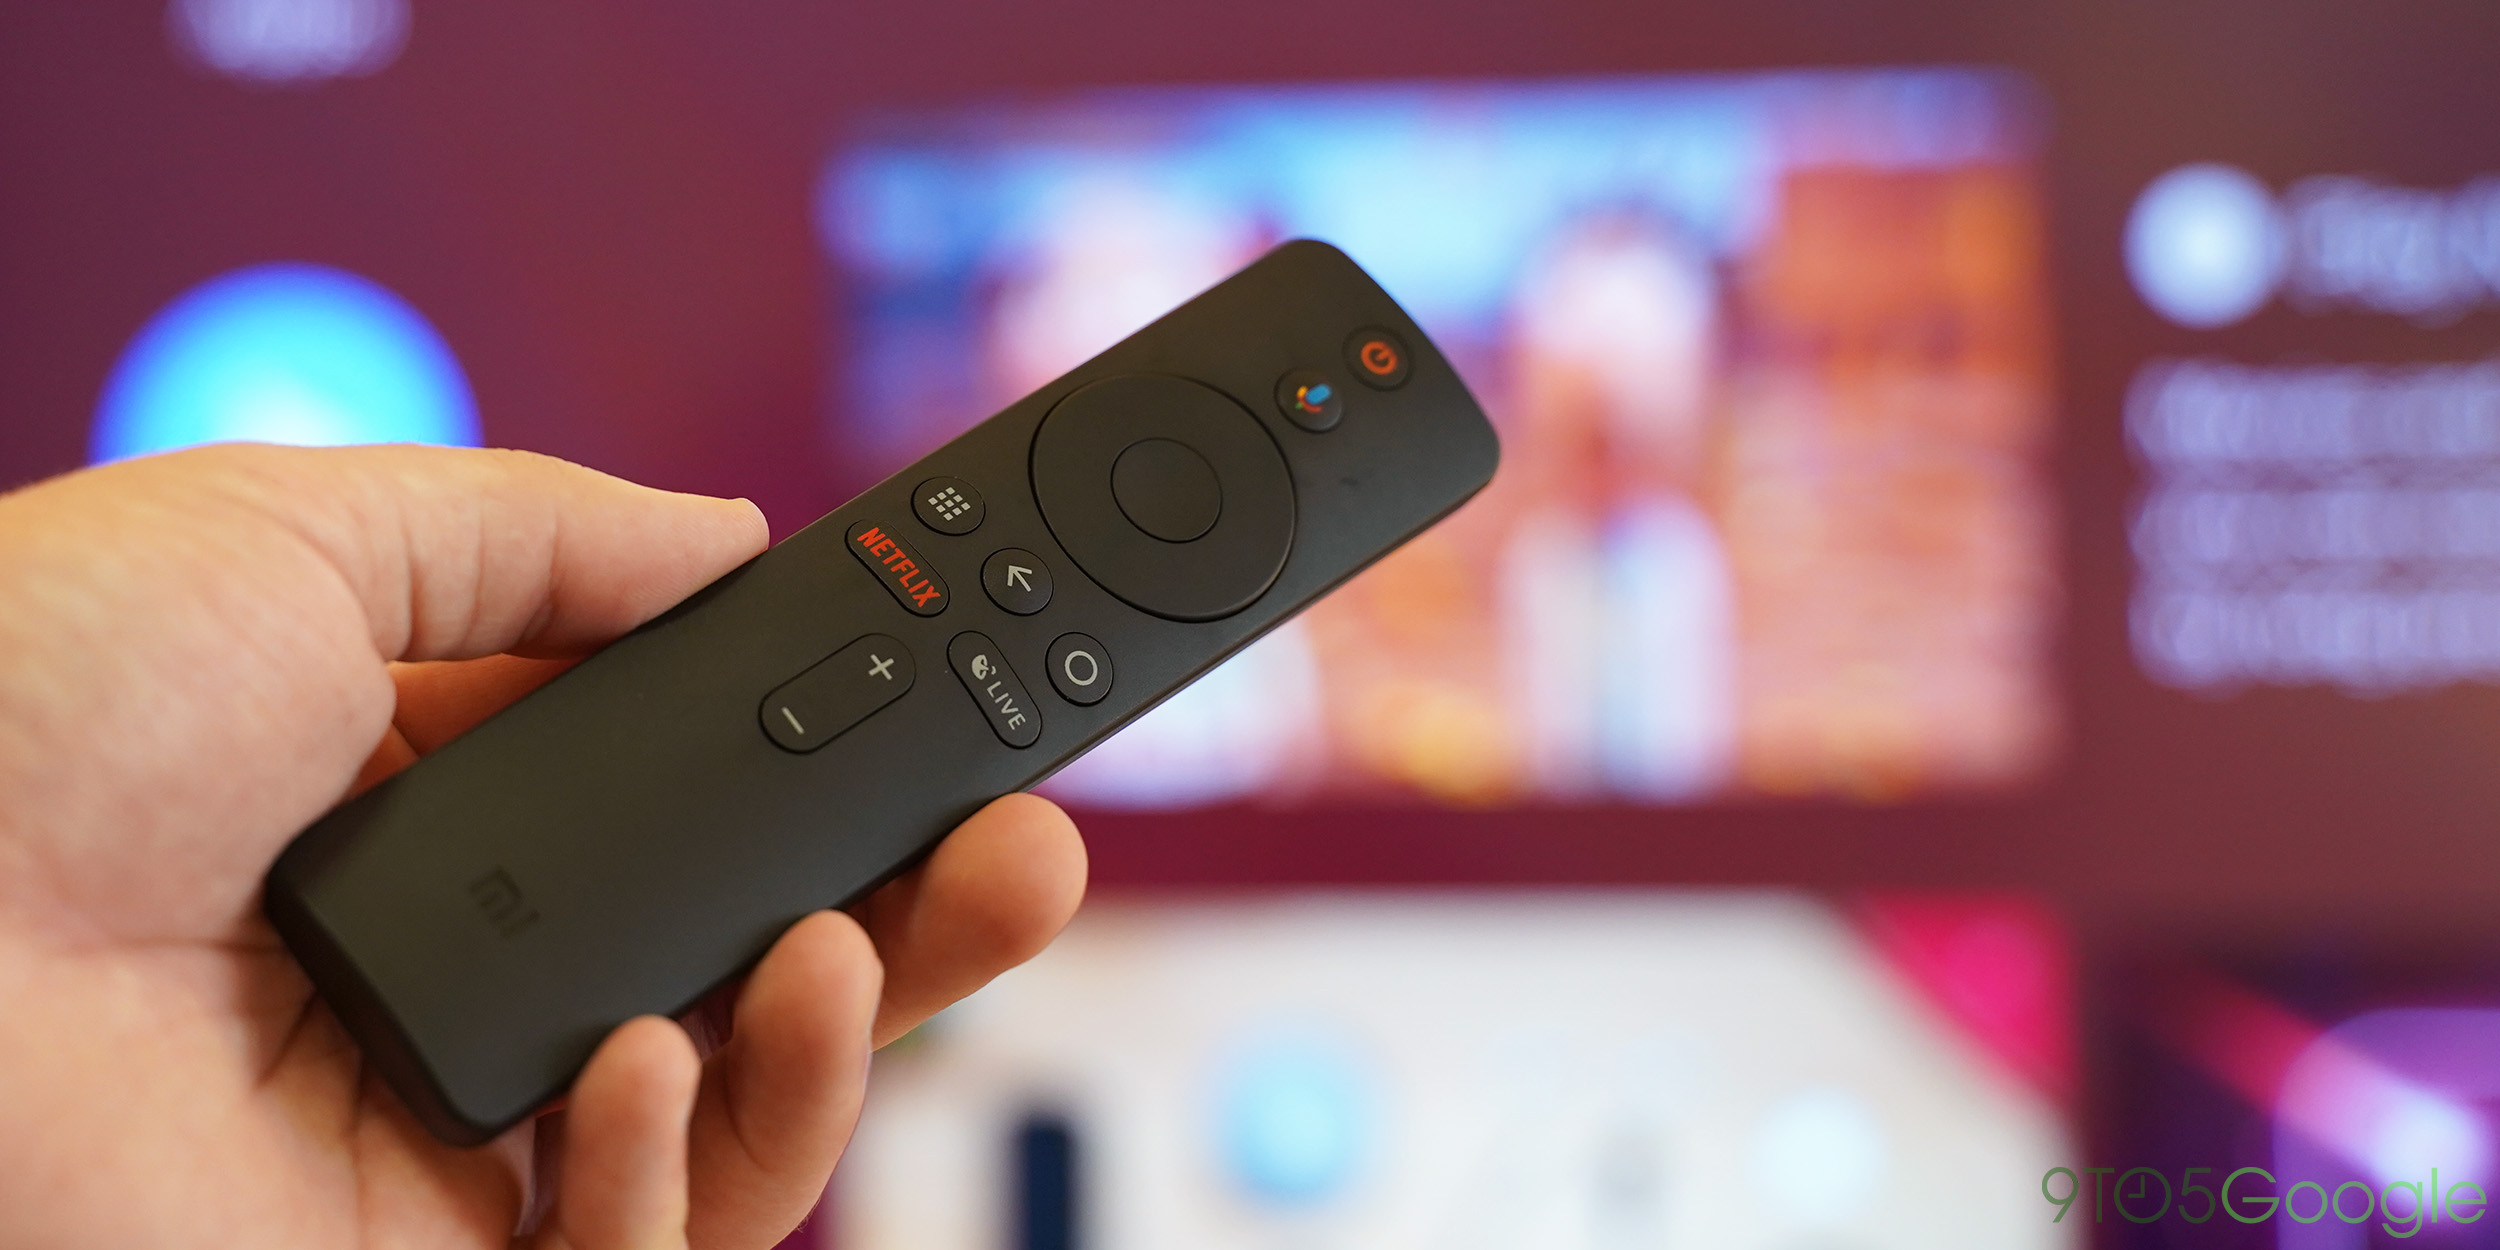 Xiaomi Mi Box S Review: The best Android TV for most users - 9to5Google